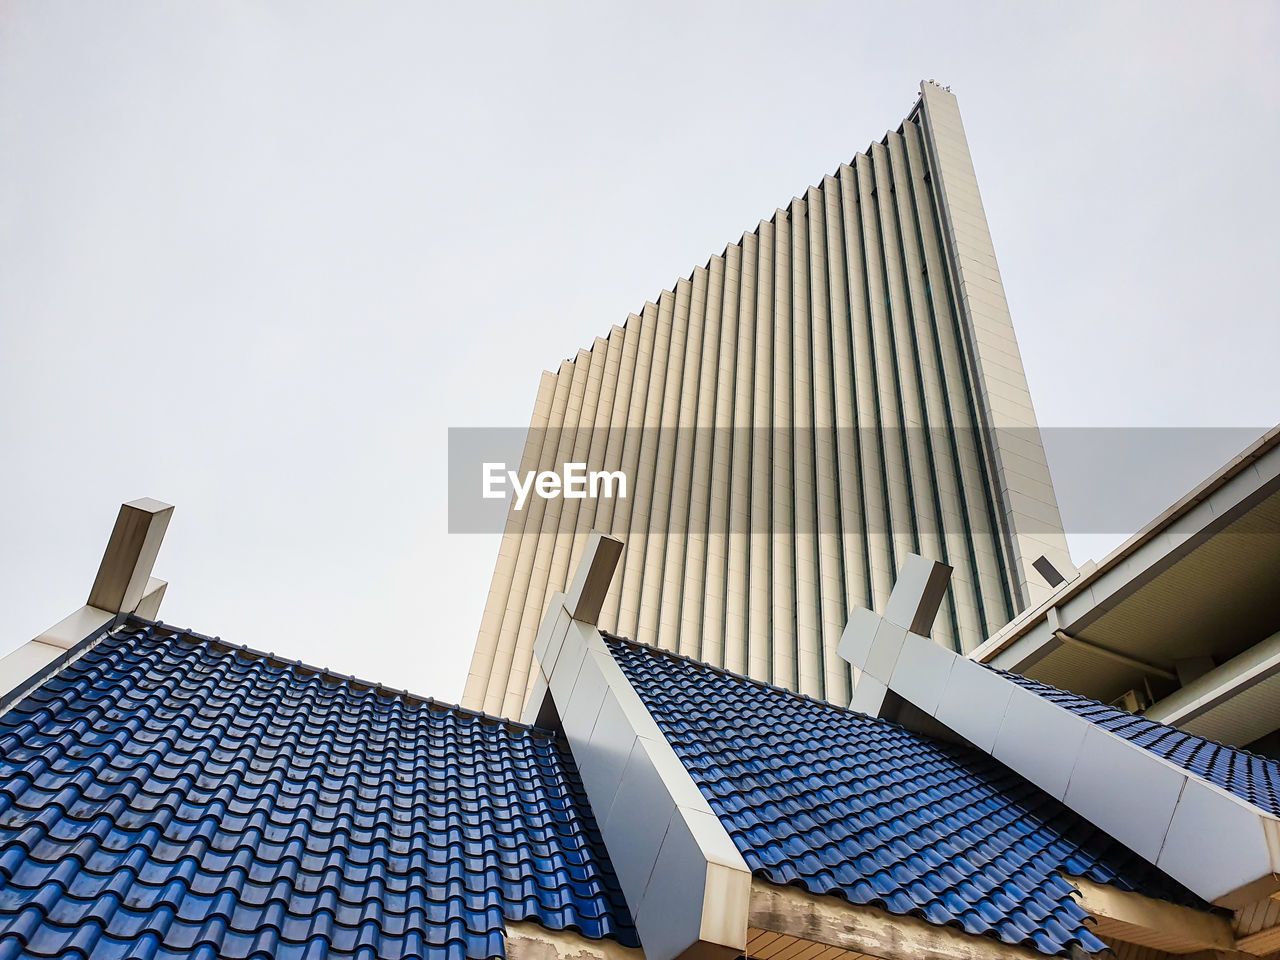 architecture, building exterior, built structure, low angle view, sky, building, clear sky, no people, pattern, roof, day, nature, modern, city, tall - high, office building exterior, outdoors, skyscraper, roof tile, house